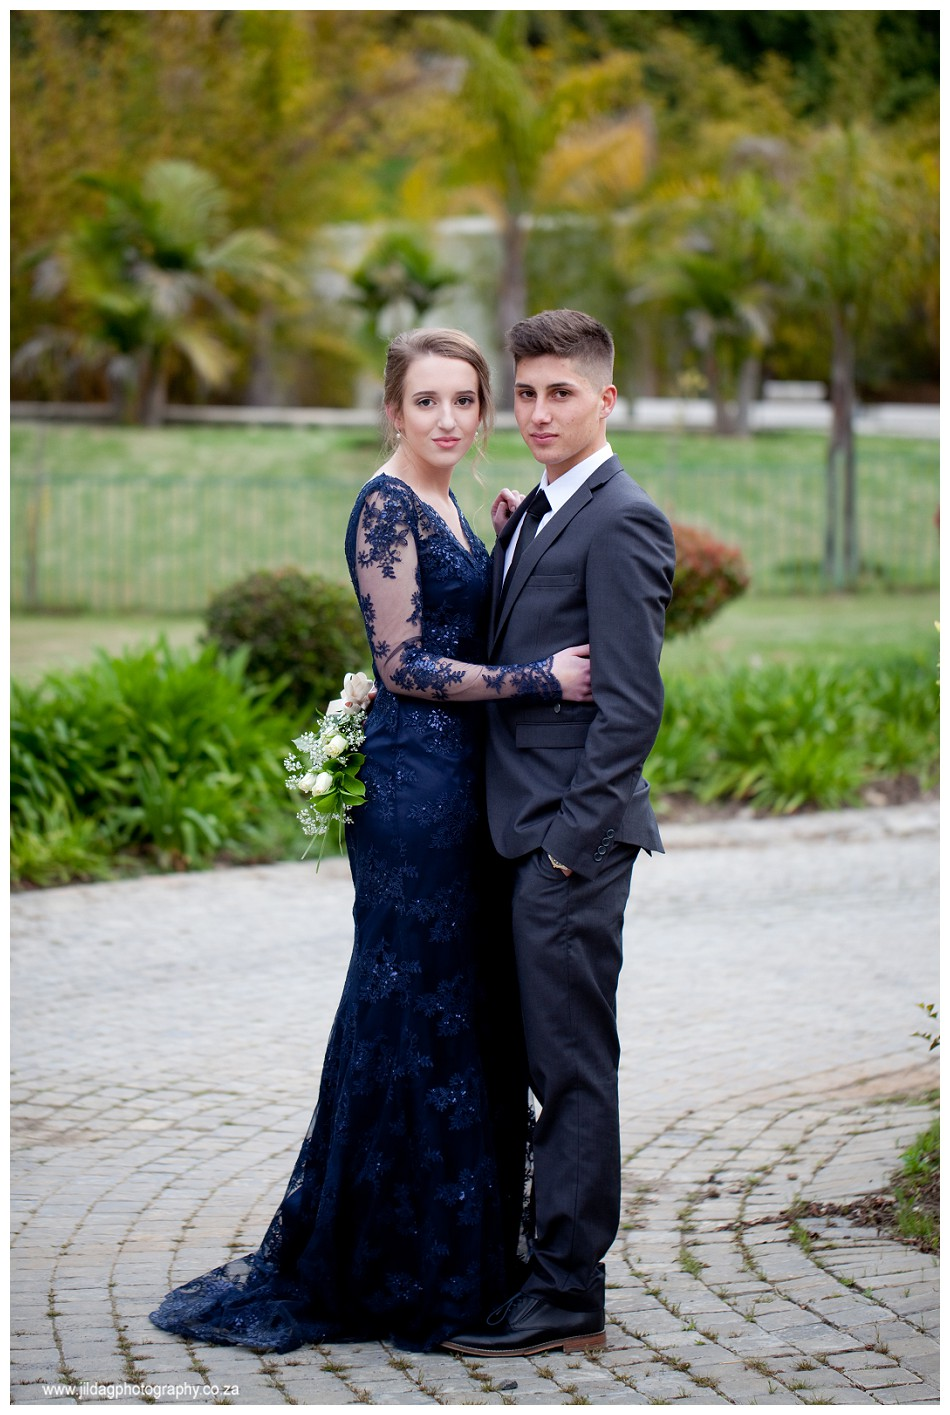 Matric-dance-fairmont-jilda-G-photography (33)